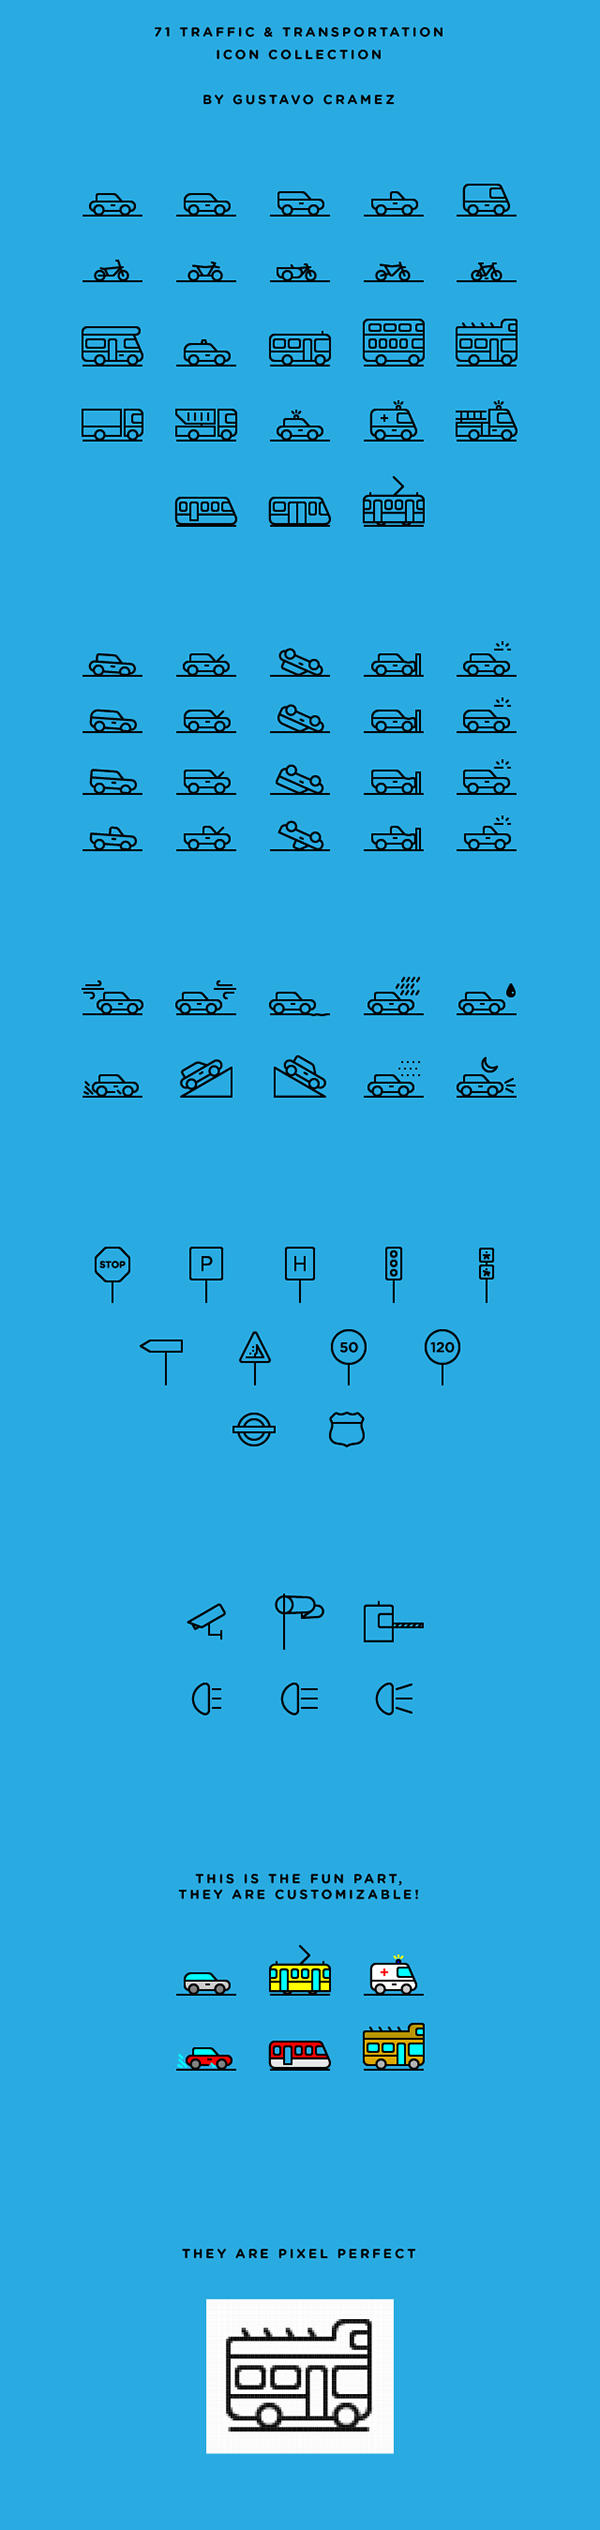 71-traffic-transportation-icons